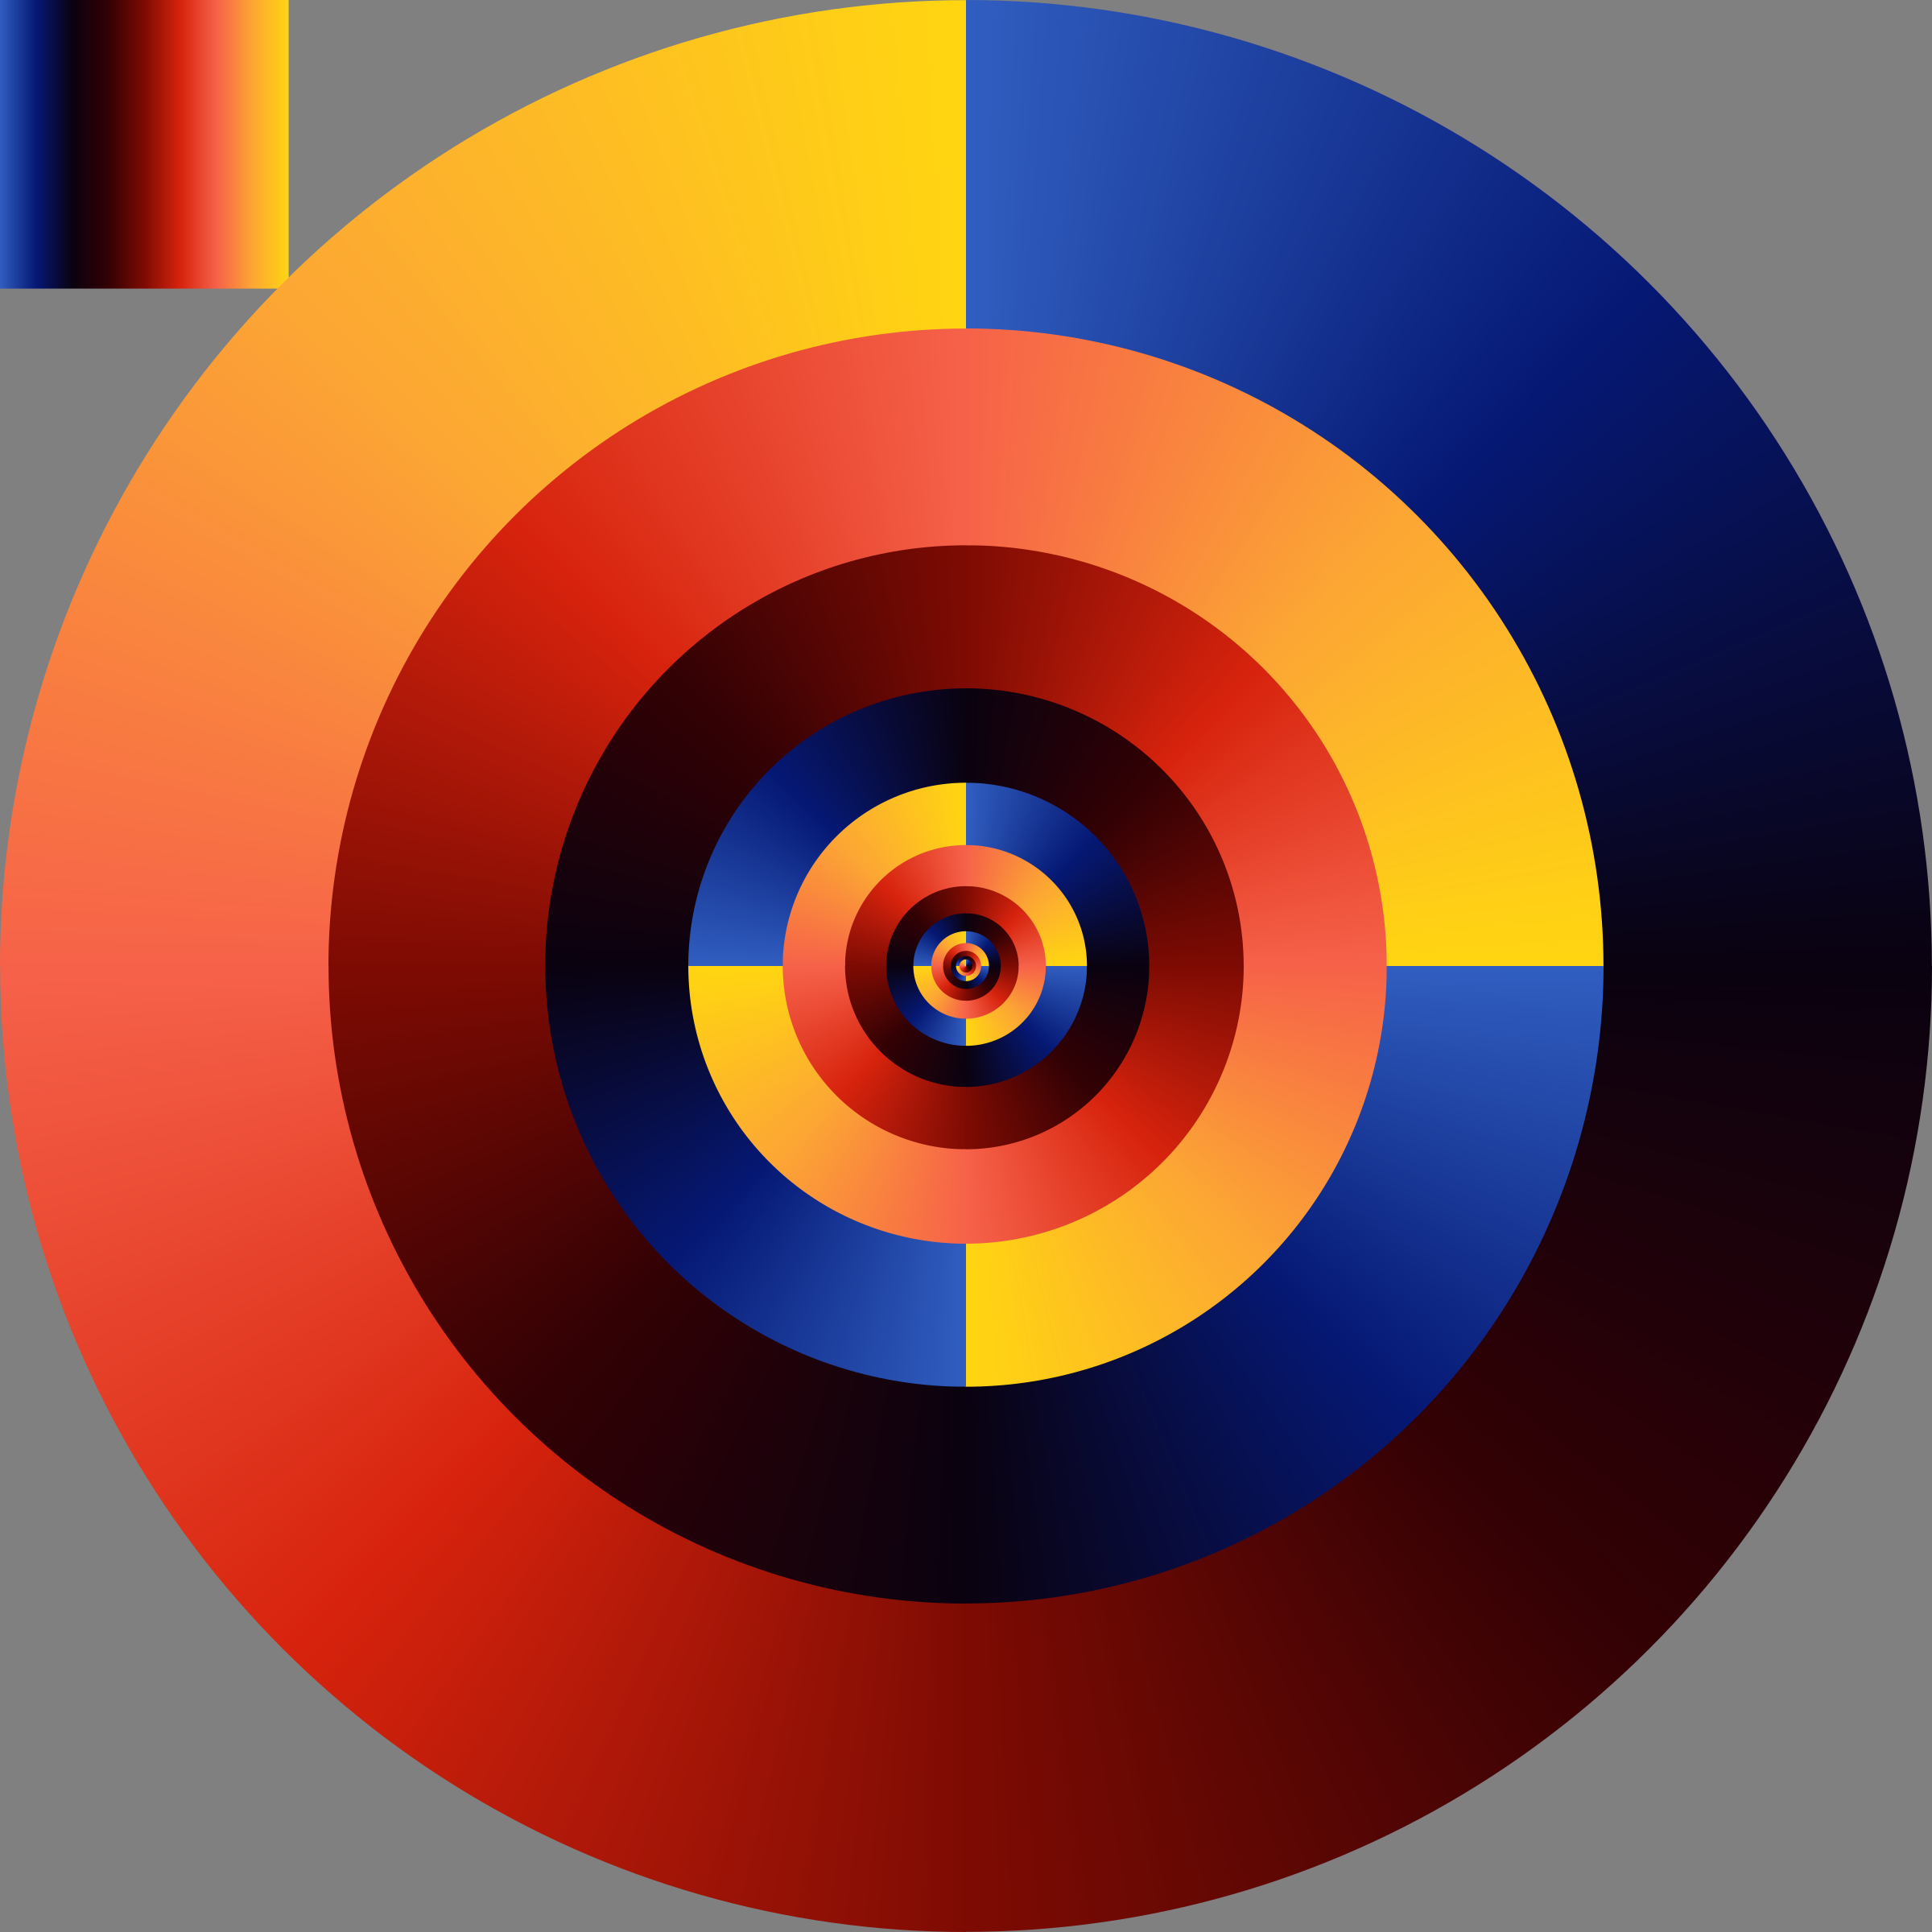 conic gradient composition by Lazur URH